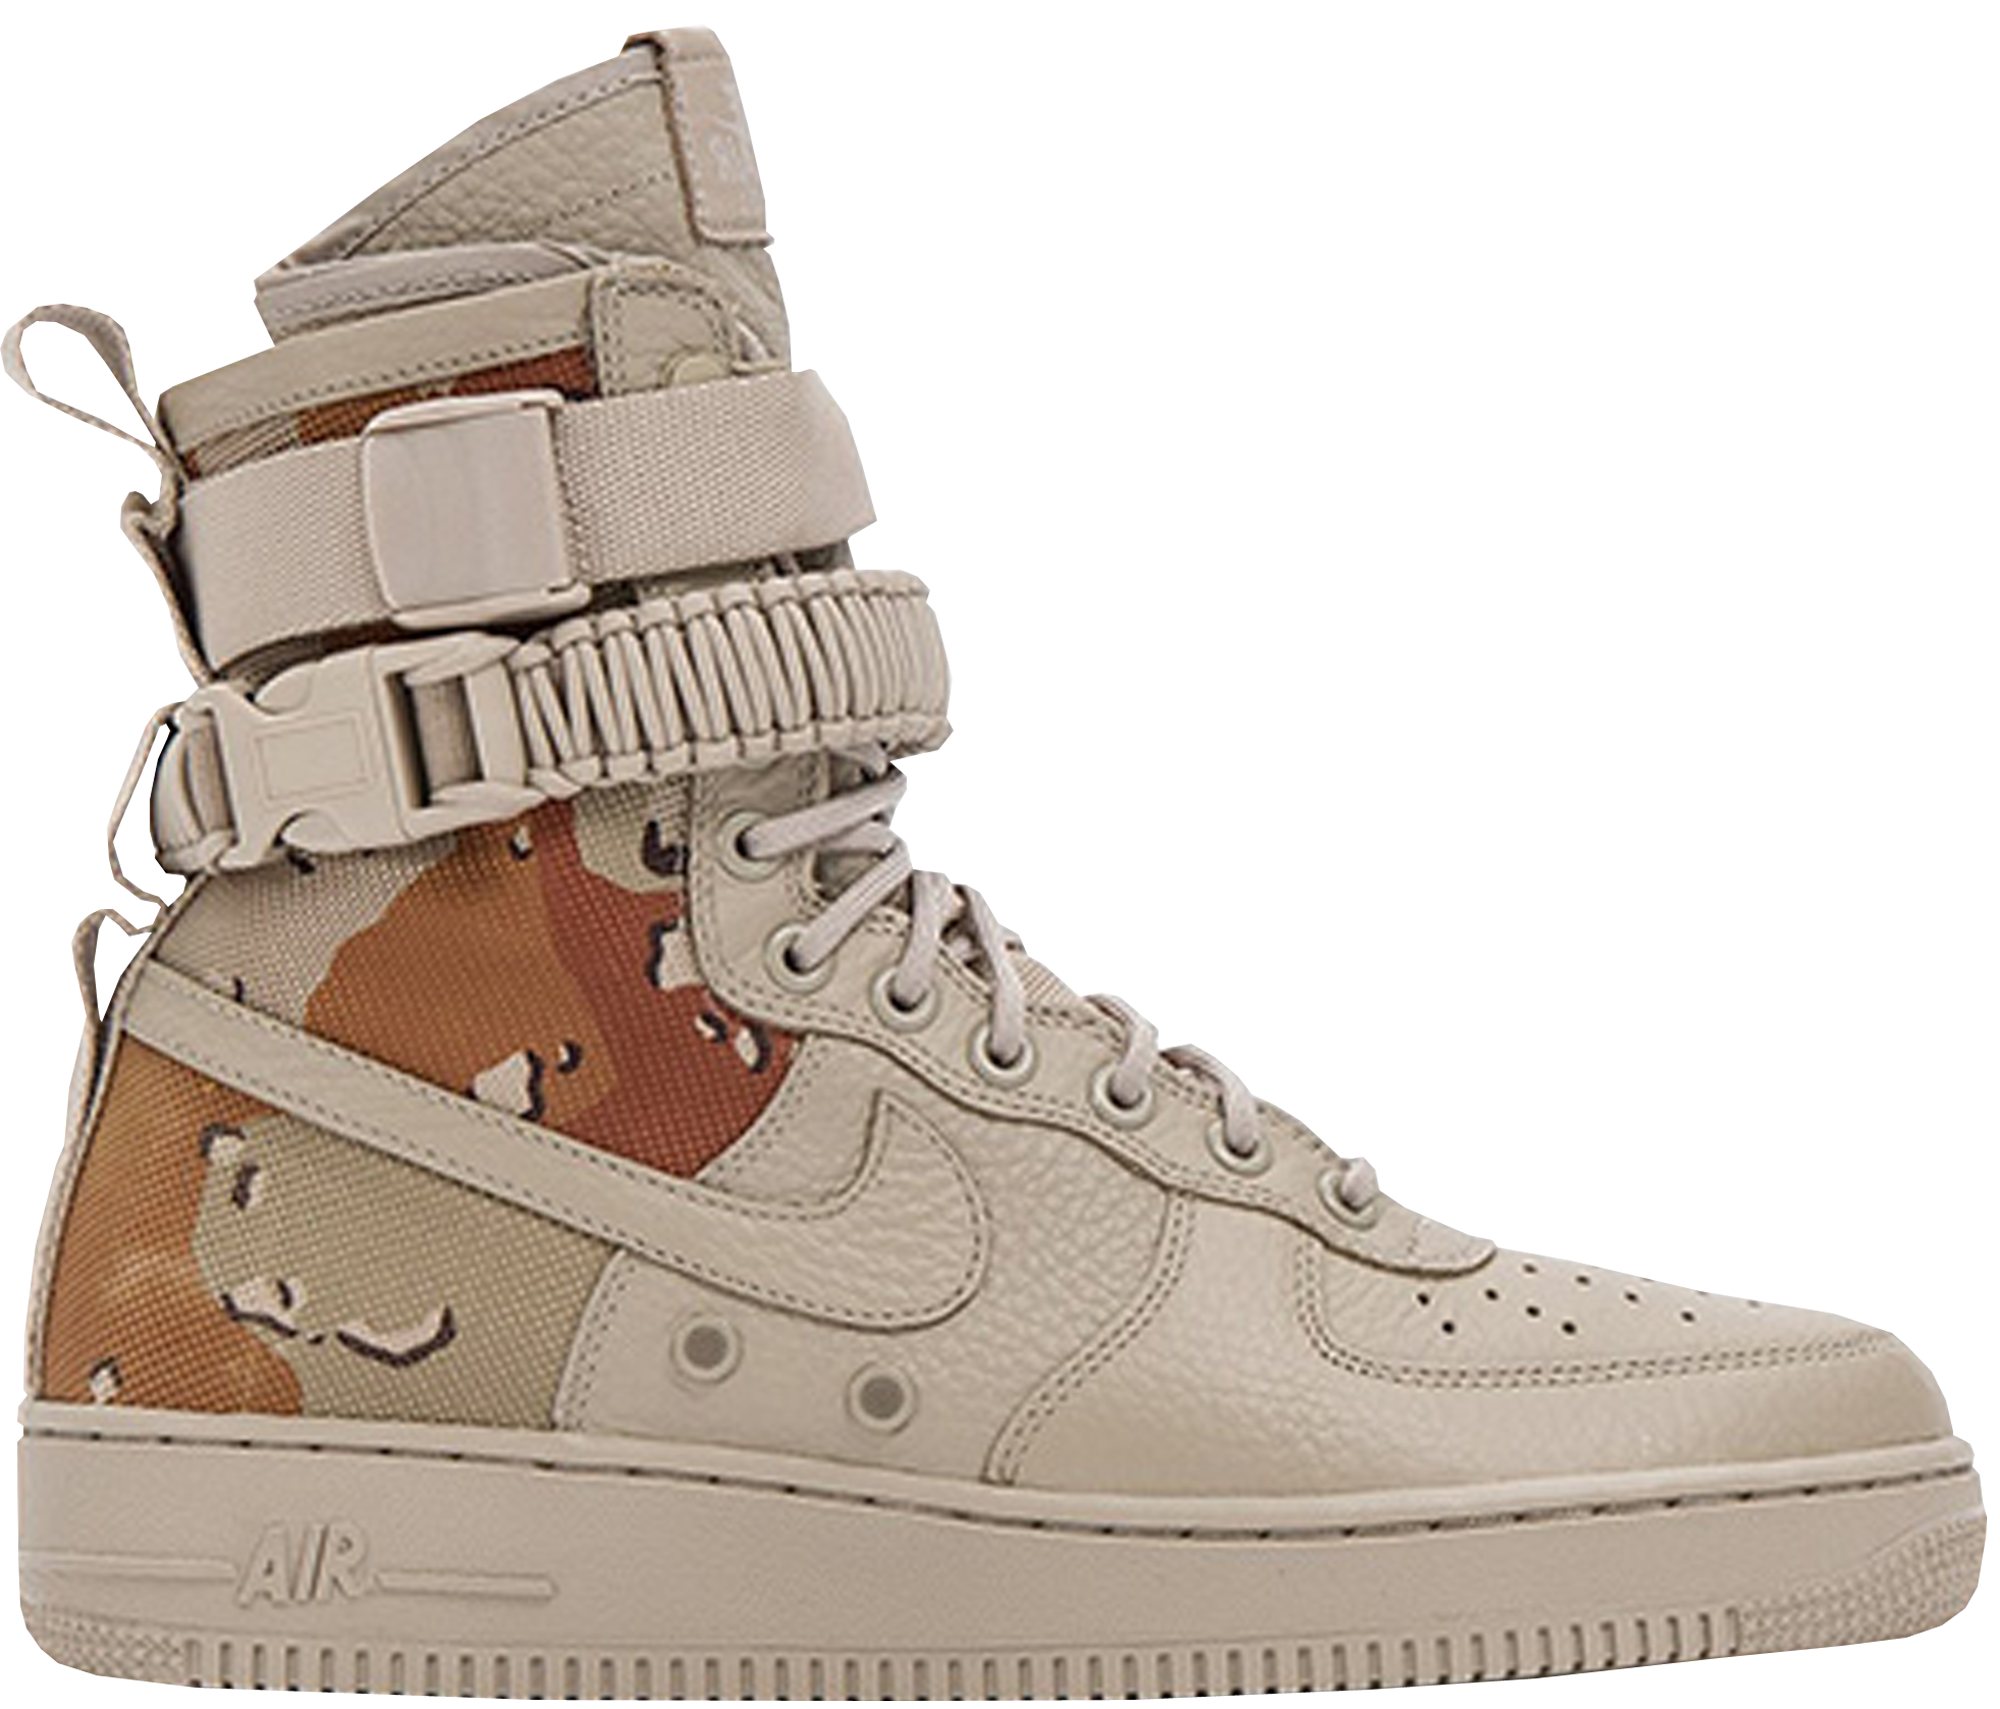 ... QS Desert Camo All Star 2017 Coming Soon Nike Special Field Air Force 1  Triple Grey Nike SF Air Force 1 Desert Camo ... da39f7b9e